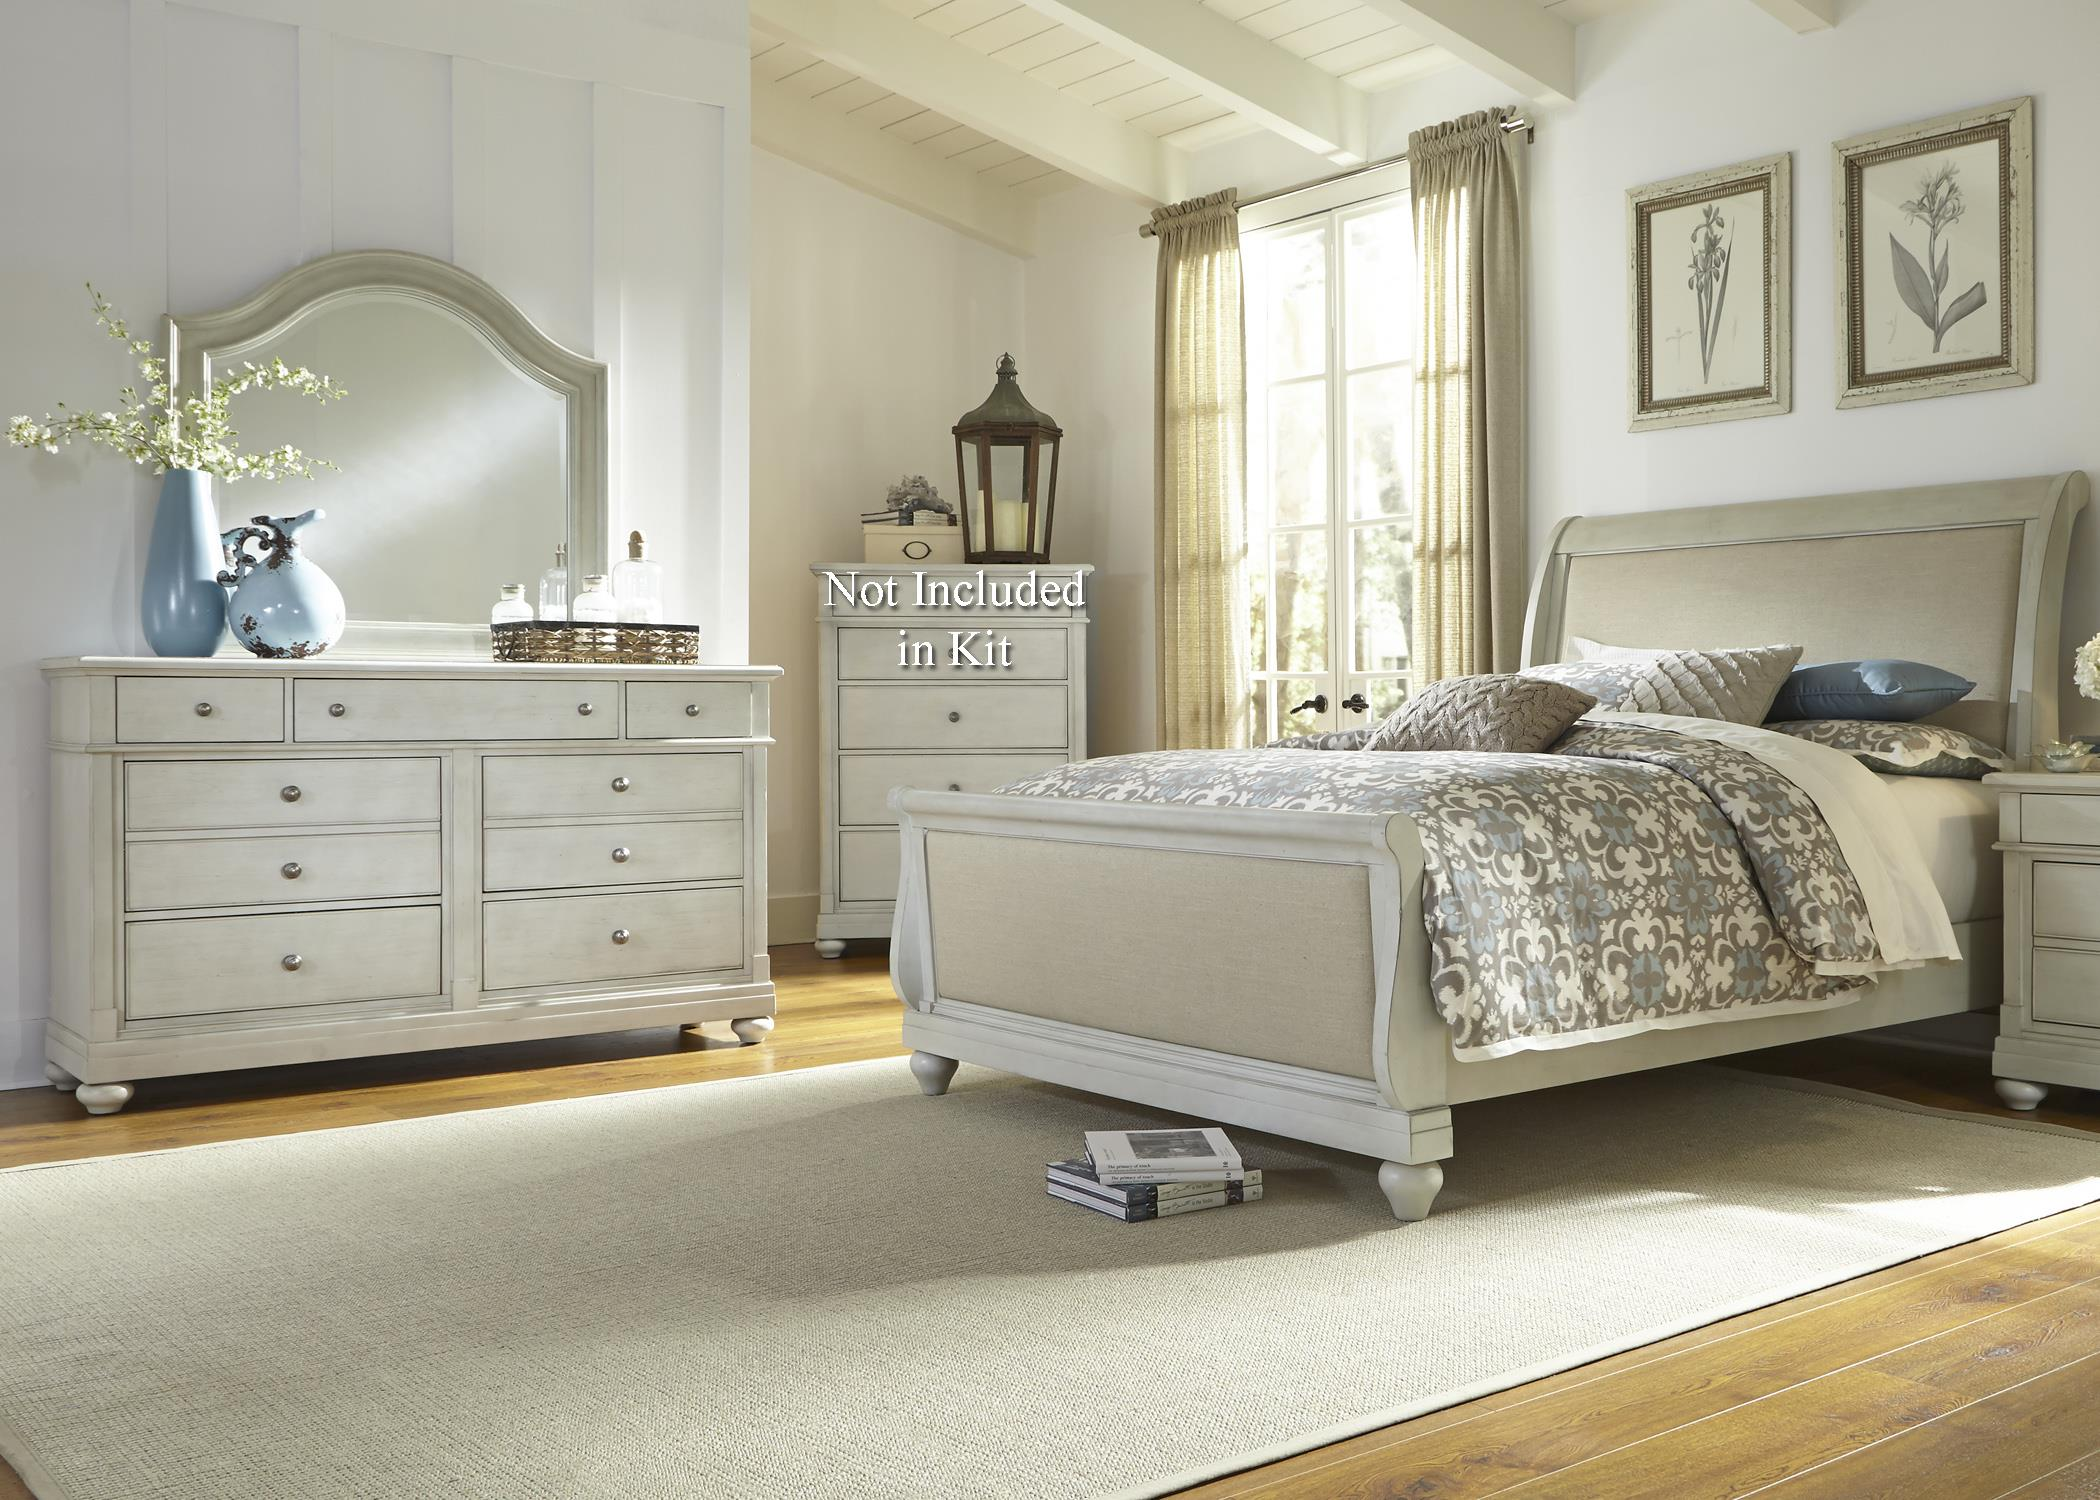 Liberty Furniture Harbor View Queen Bedroom Group - Item Number: 731-BR-QSLDM